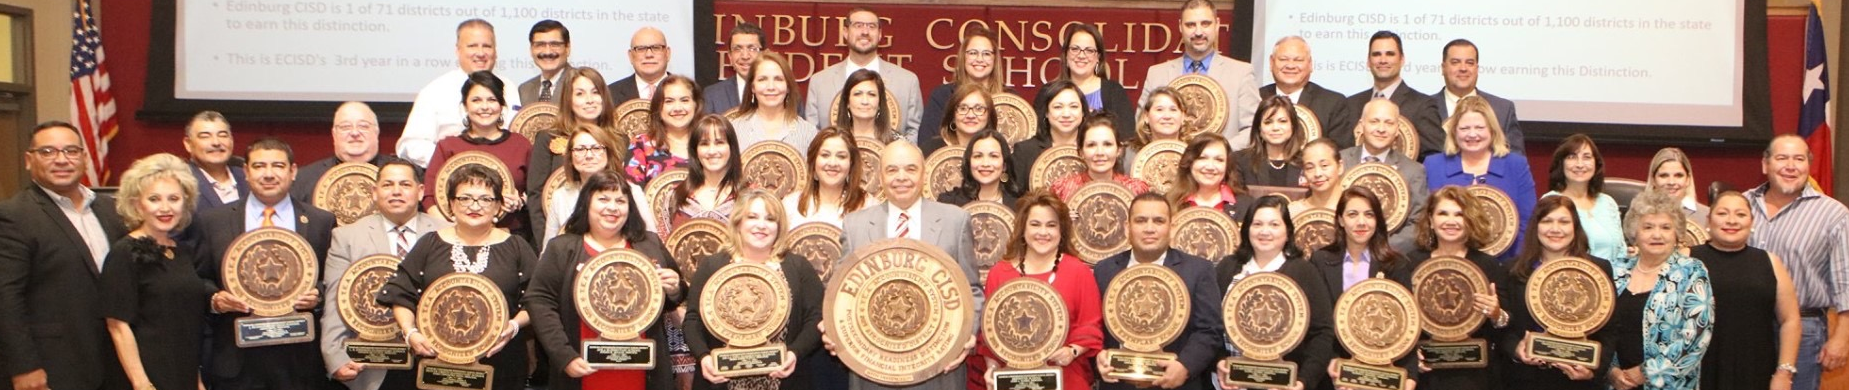 2019-2020 ECISD School board and administration hold up awards for the district.